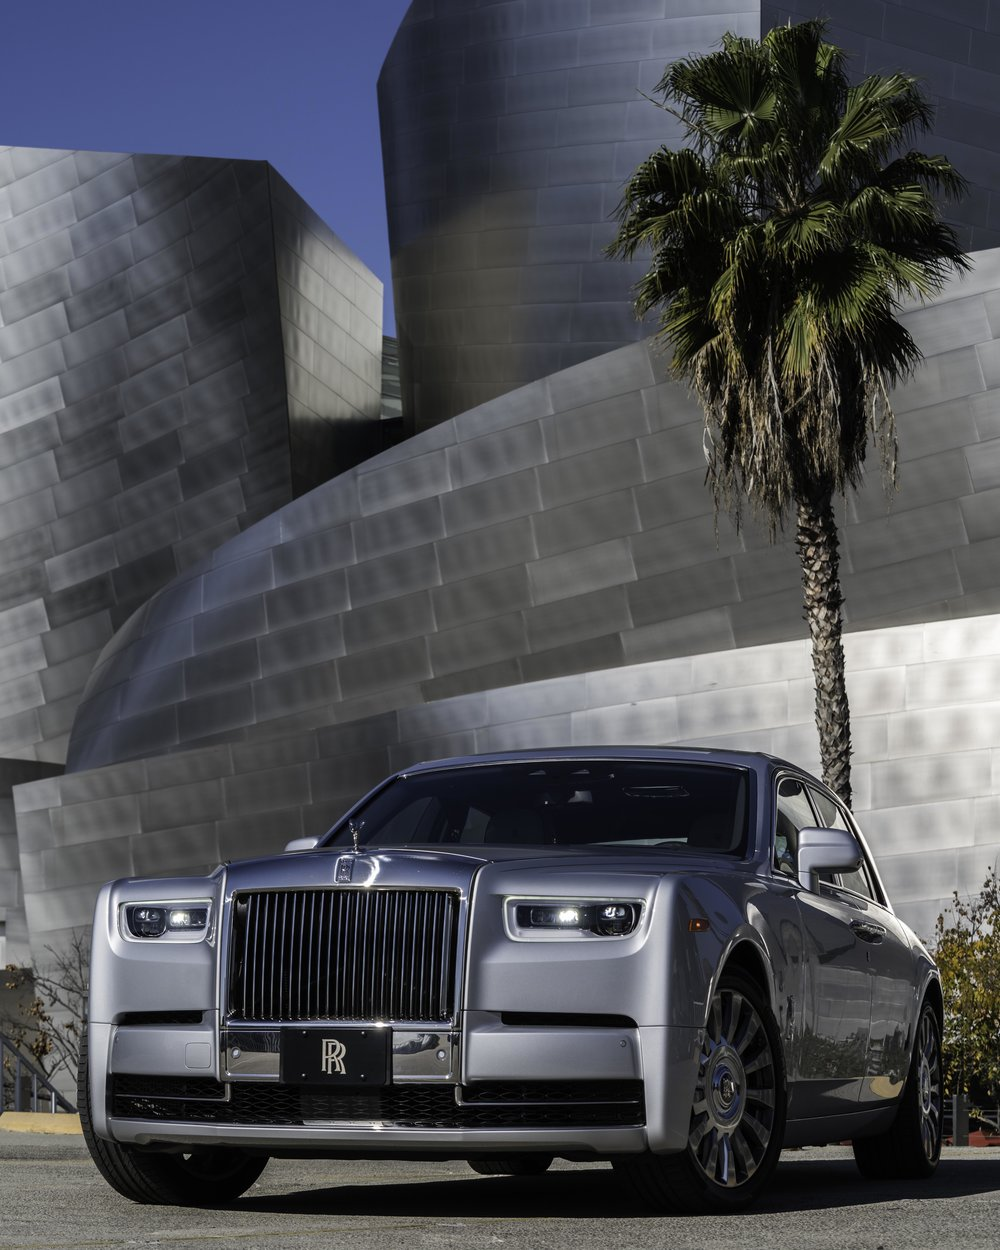 Rolls-Royce Phantom at Disney Concert Hall, LA